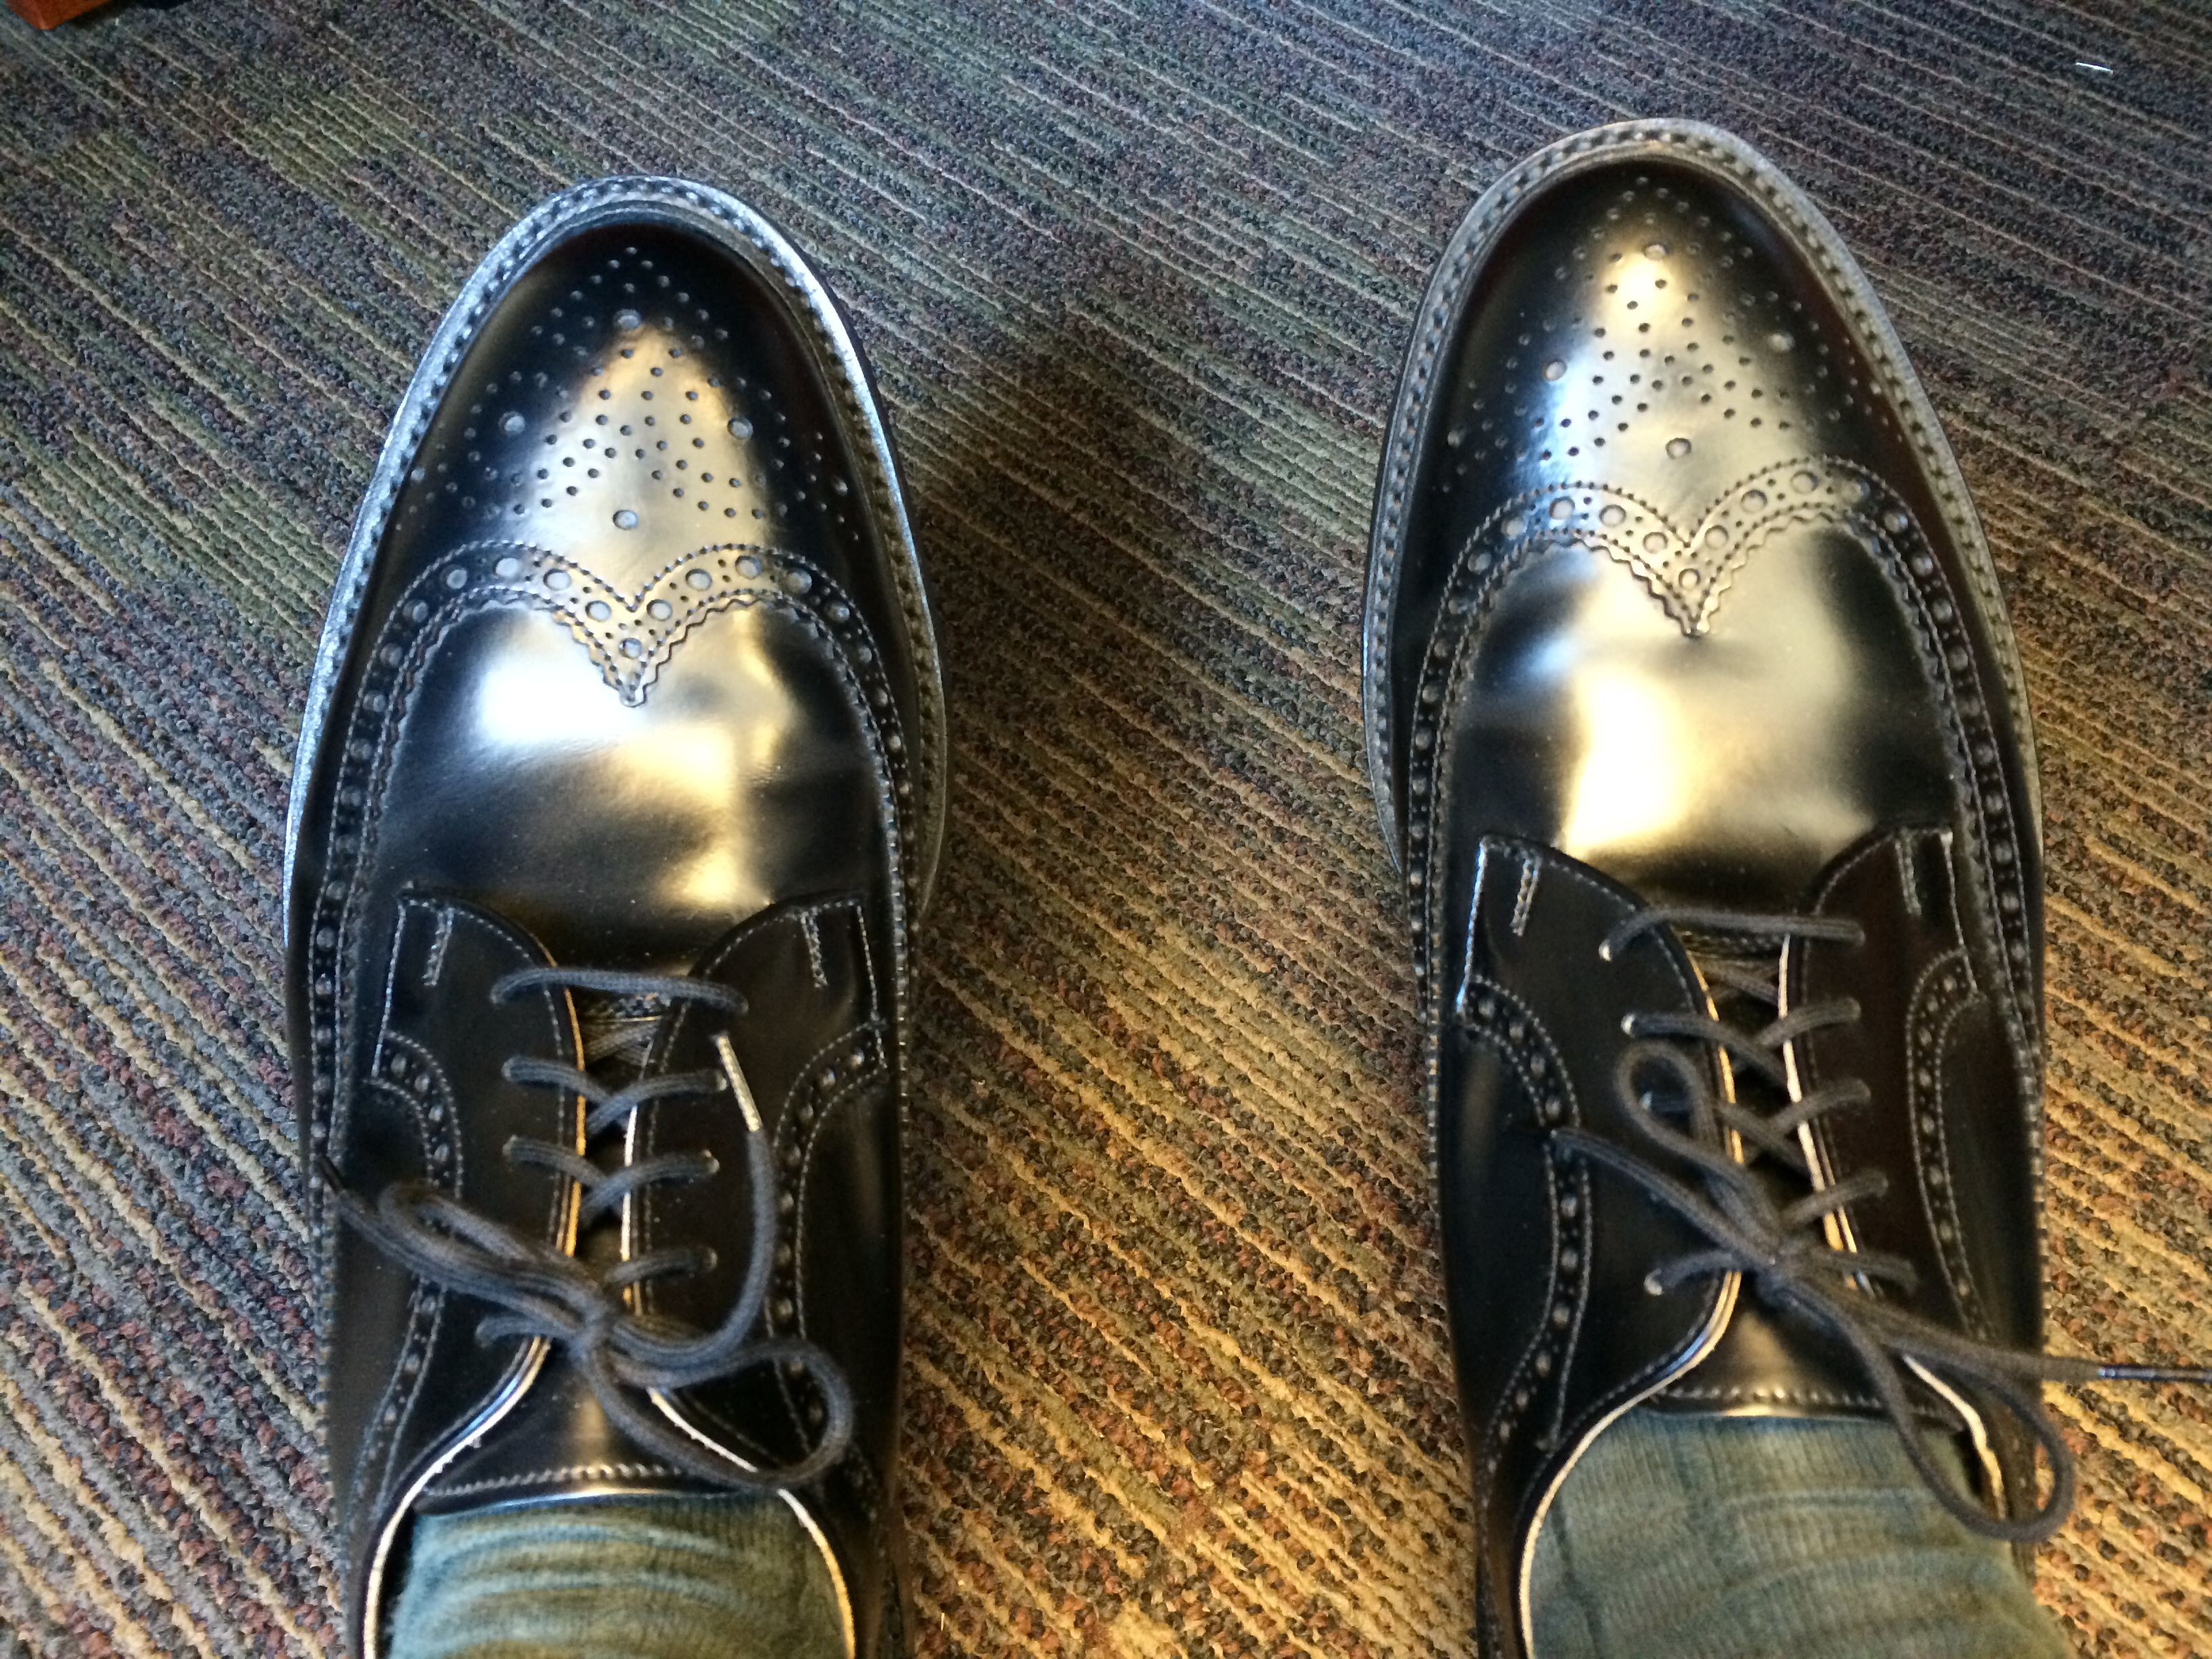 newbiealden's photos in ** Quintessential Crockett & Jones Thread **